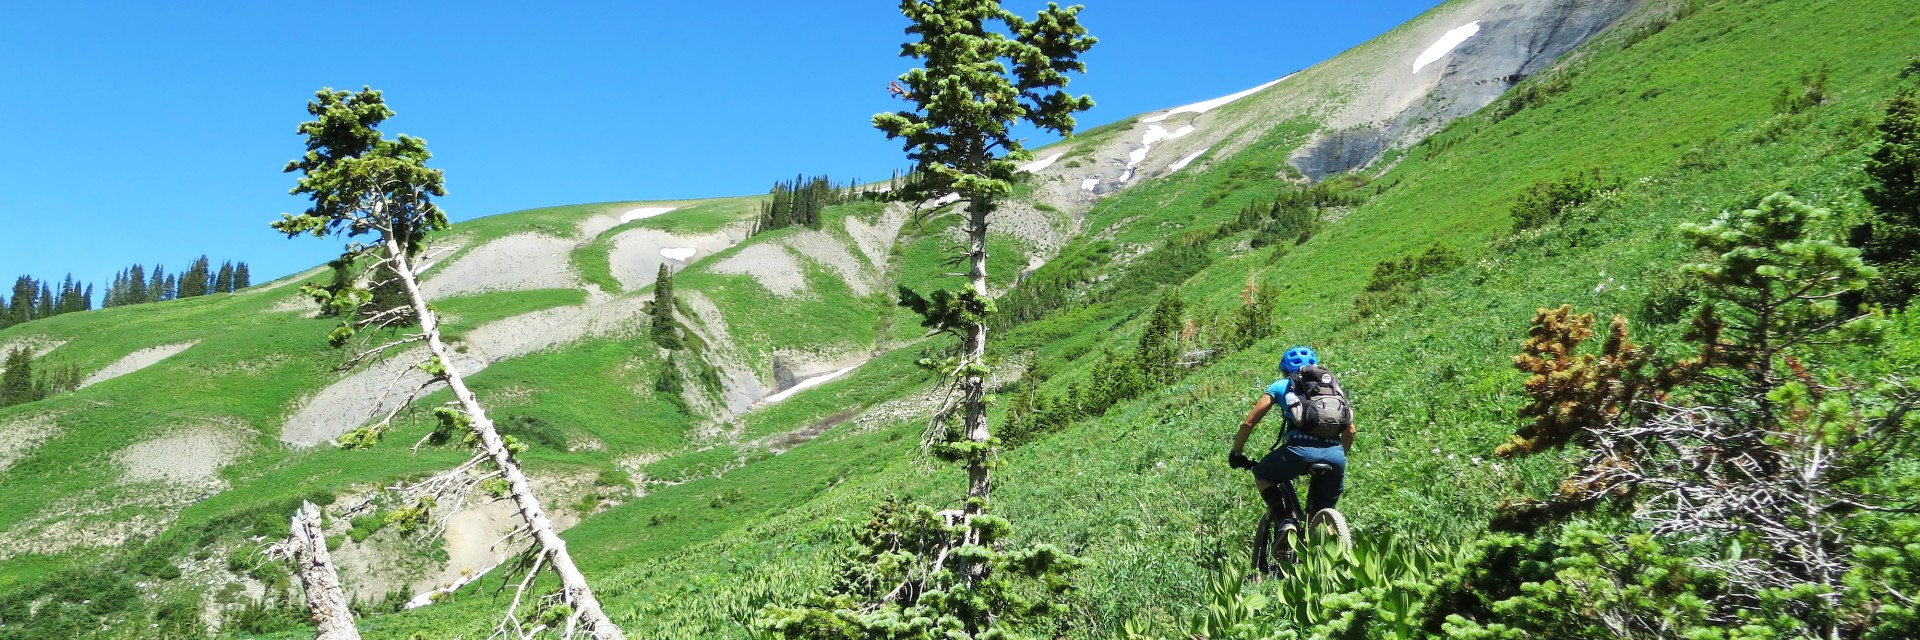 Crested Butte singletrack above treeline